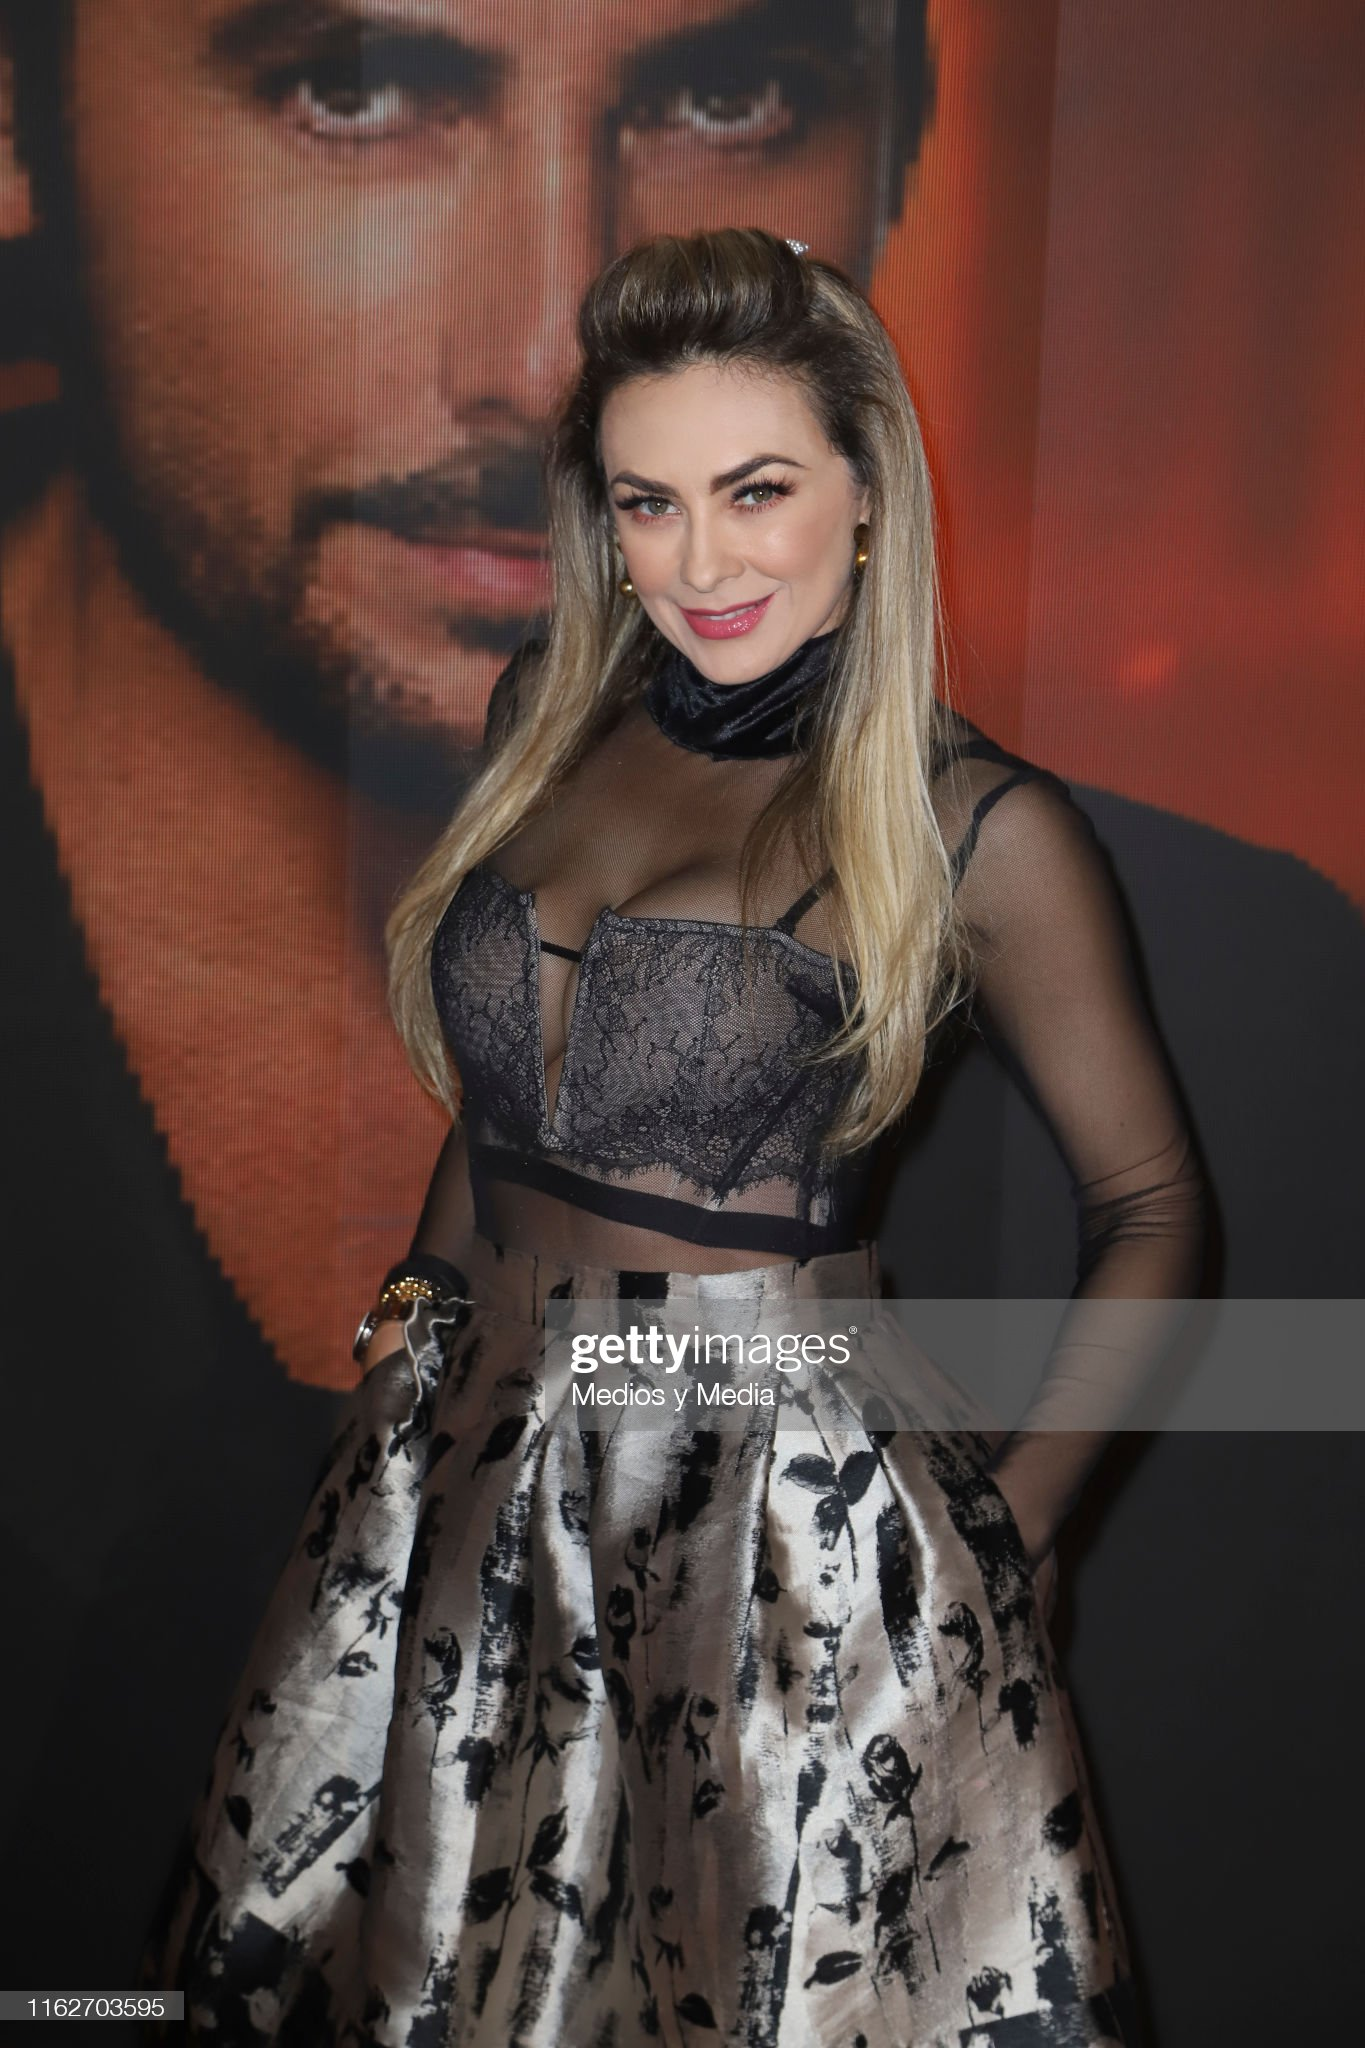 https://media.gettyimages.com/photos/aracely-arambula-poses-for-photos-on-the-red-carpet-for-the-at-1-picture-id1162703595?s=2048x2048